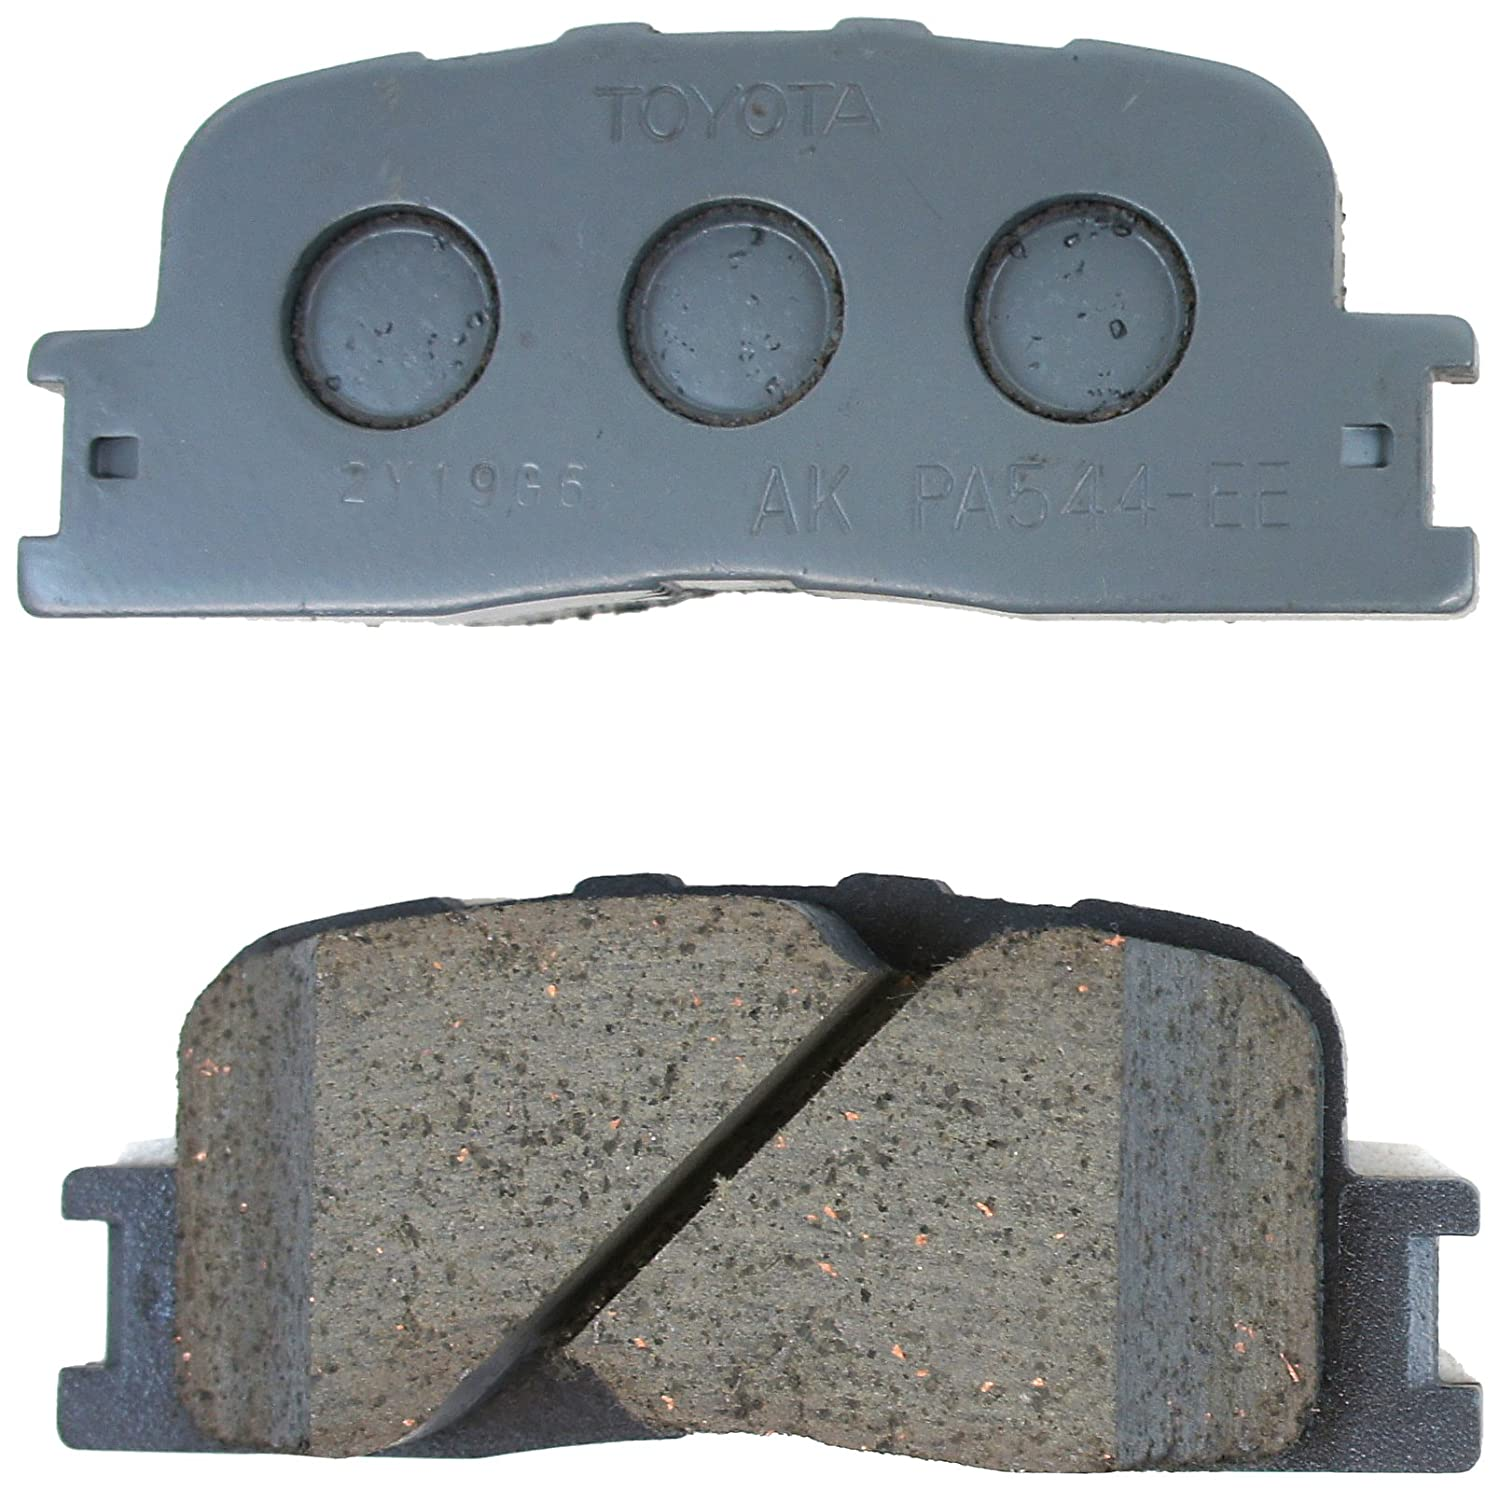 Toyota Genuine Parts 04466-33090 Rear Brake Pad Set